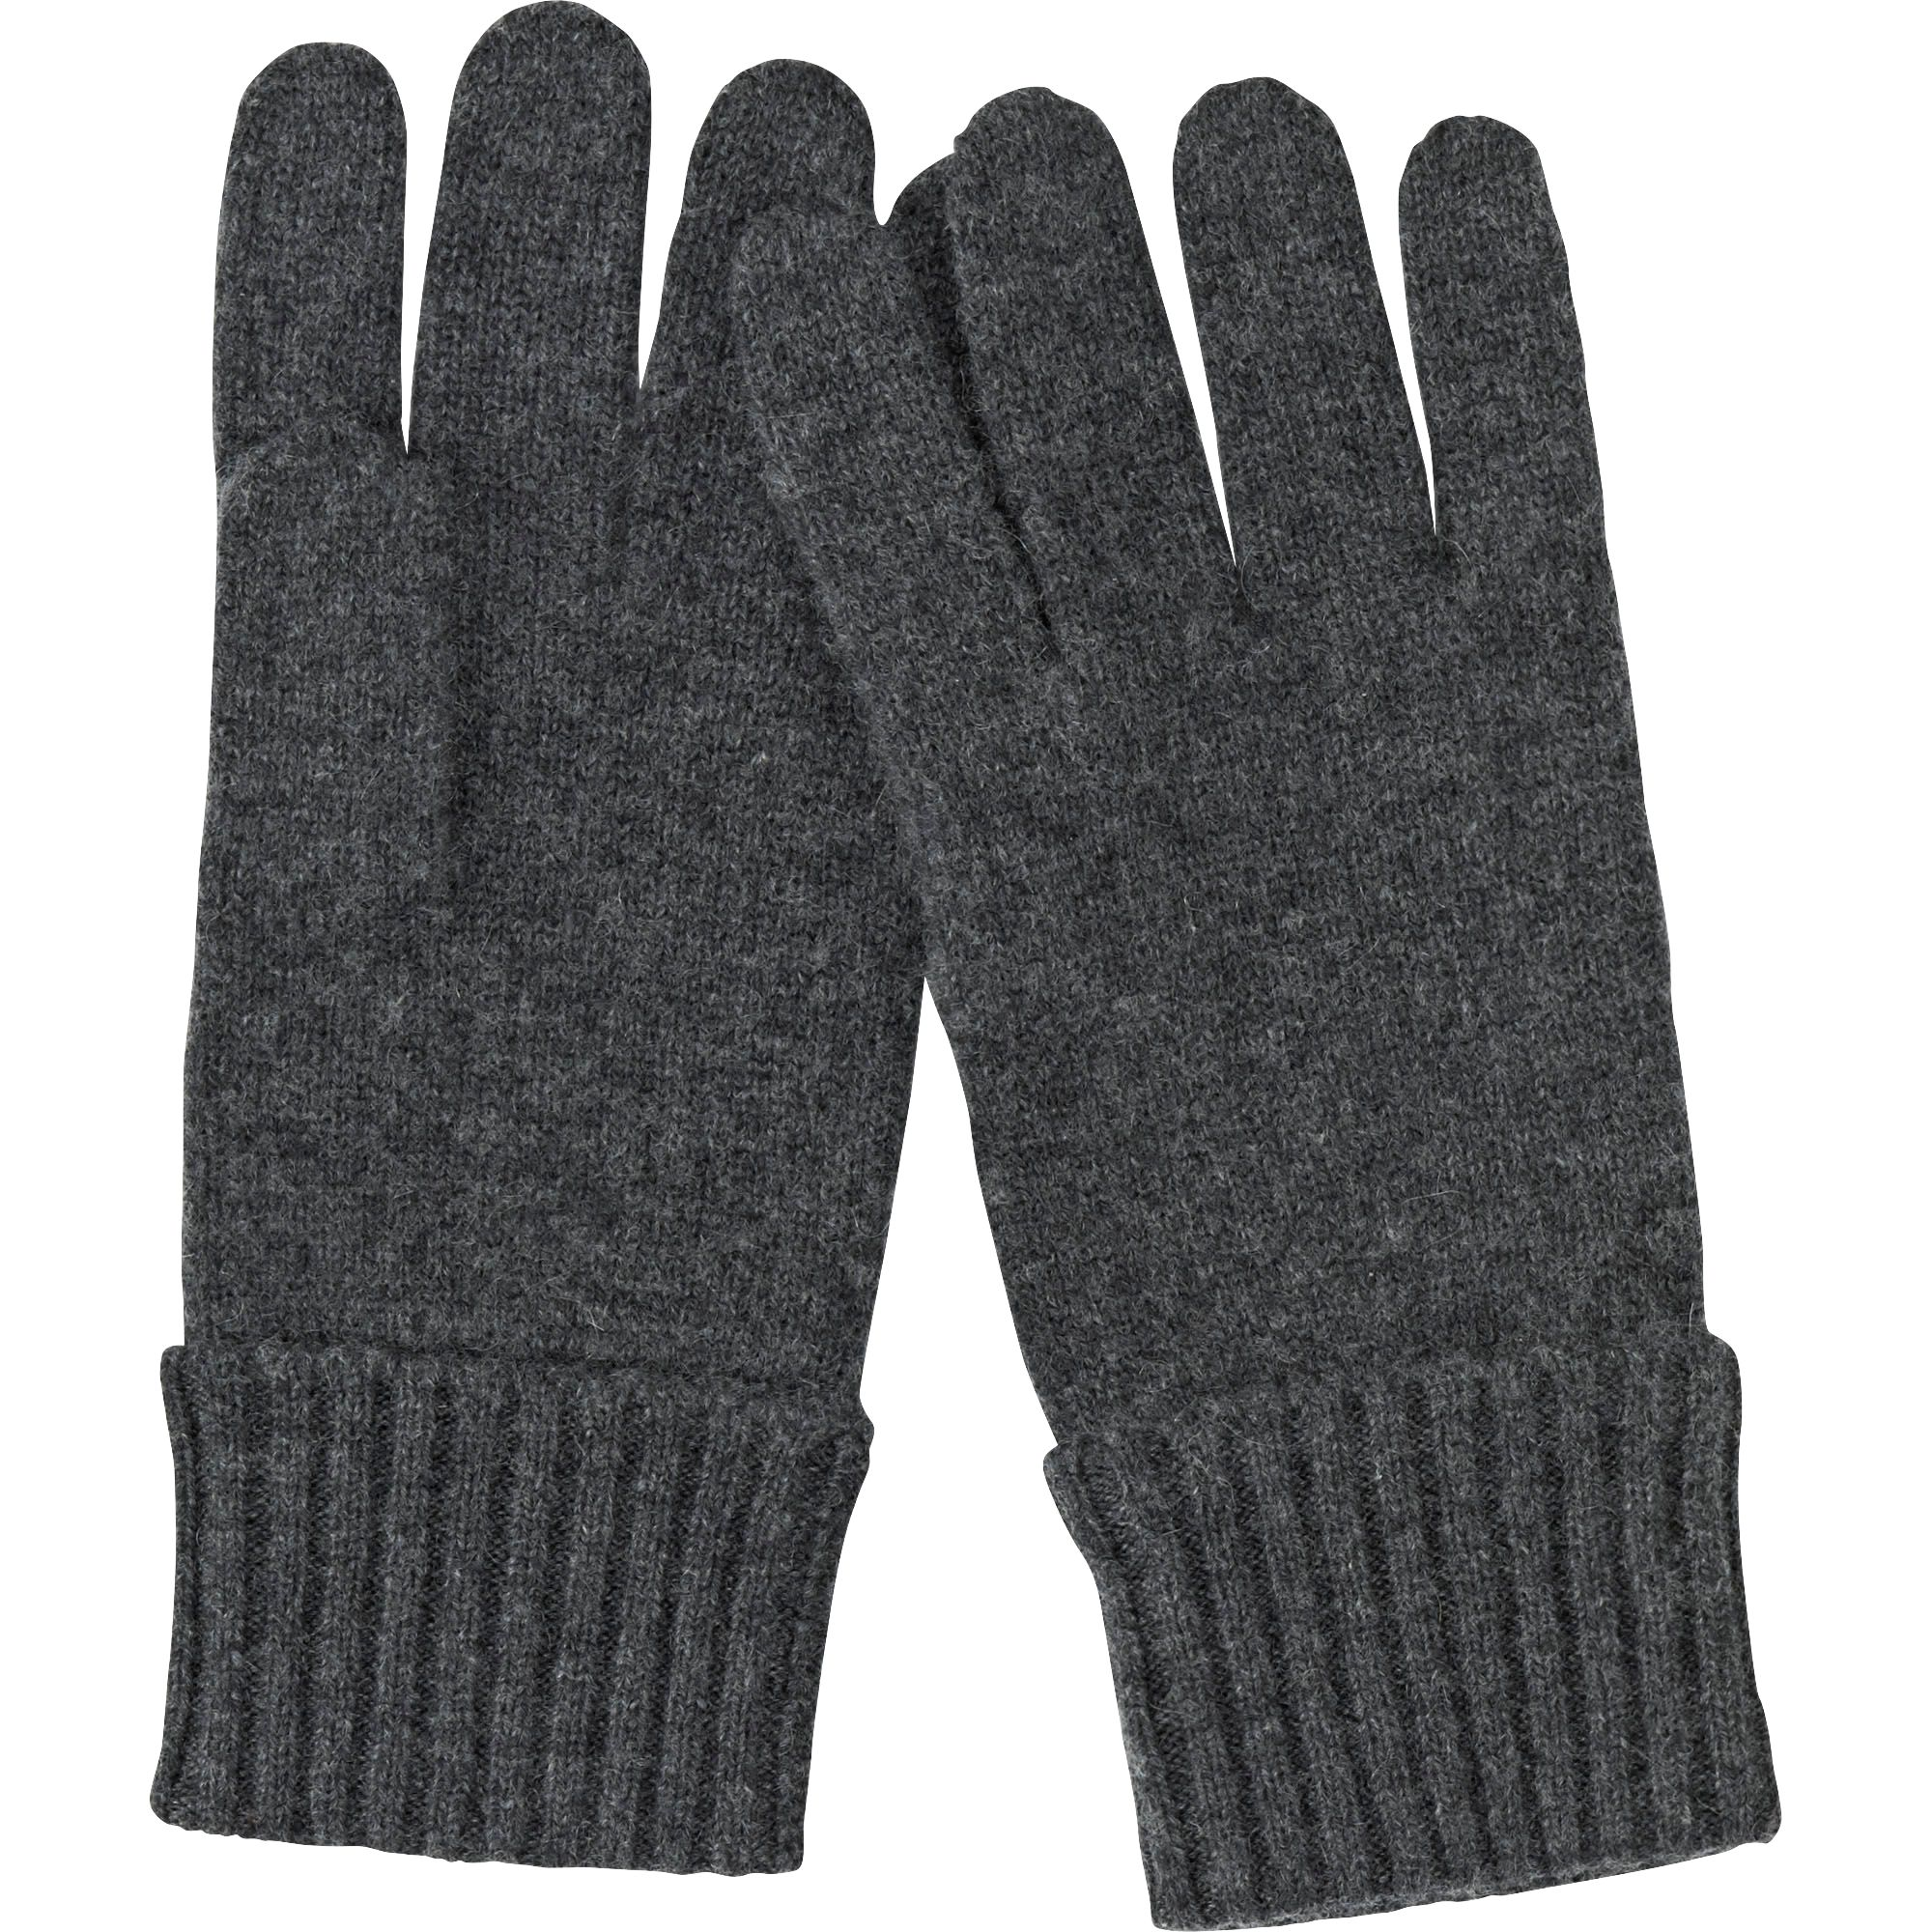 Knitting Pattern Cashmere Gloves : CASHMERE KNIT GLOVES UNIQLO